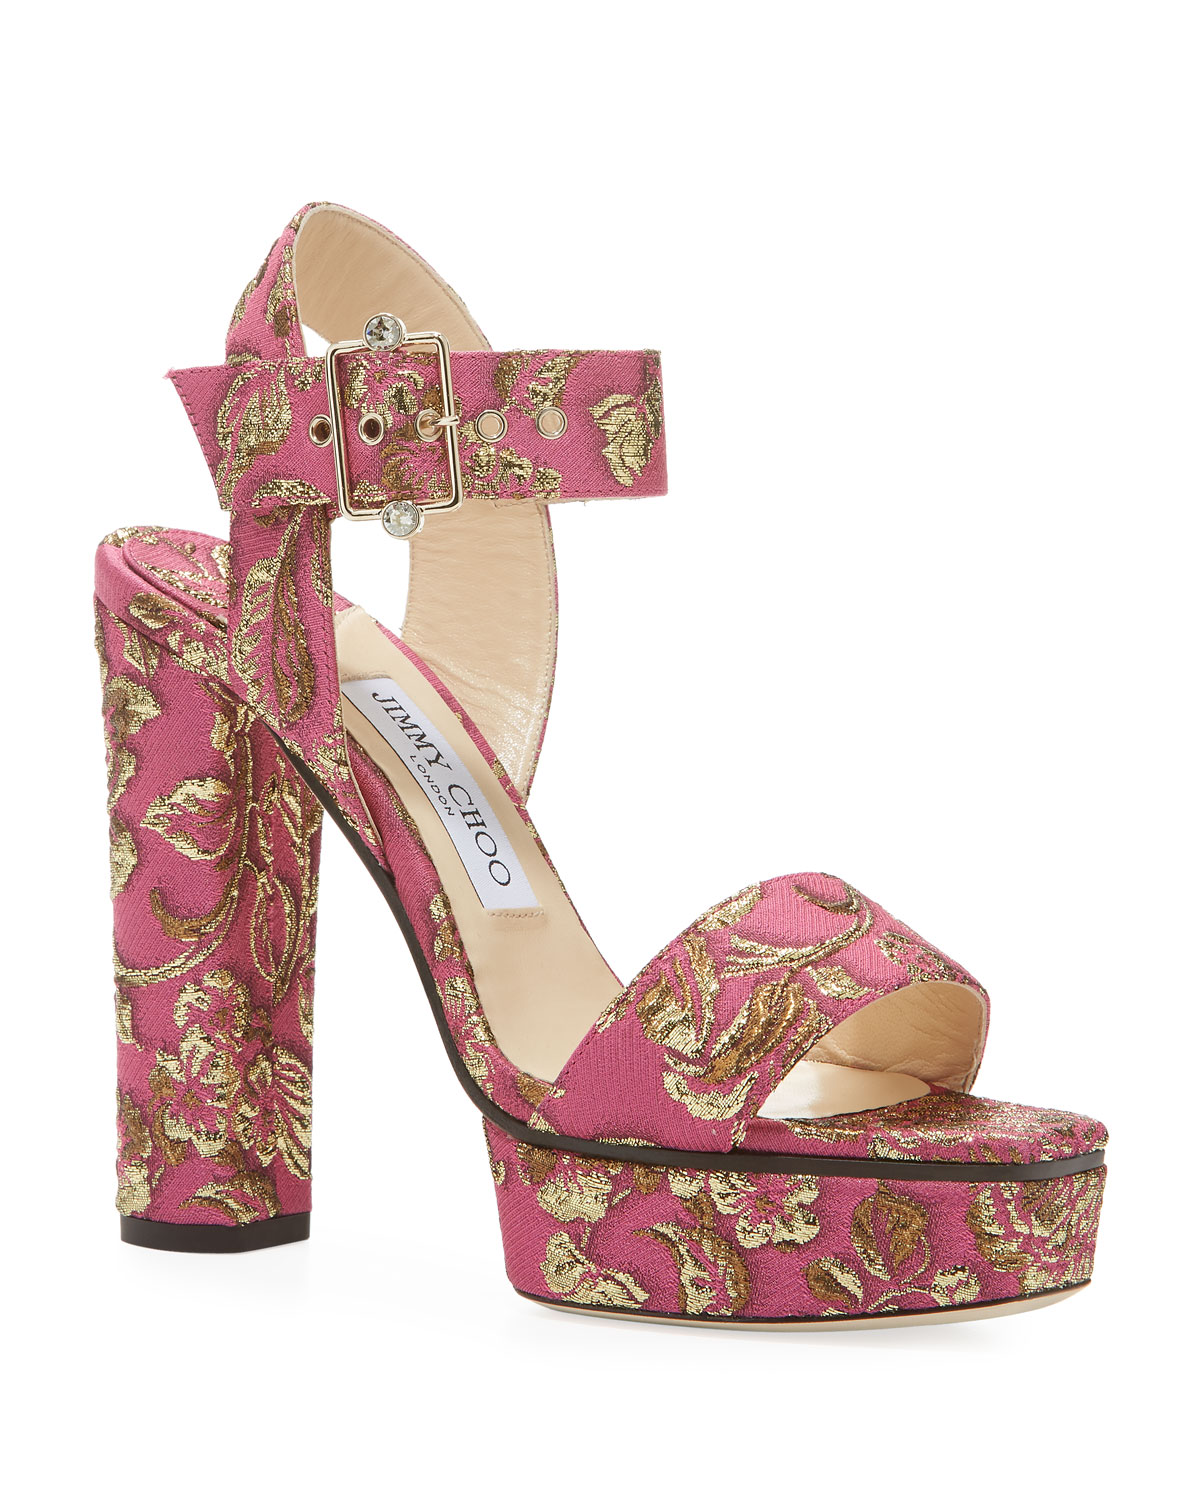 Jimmy Choo Maie Brocade Platform Sandals